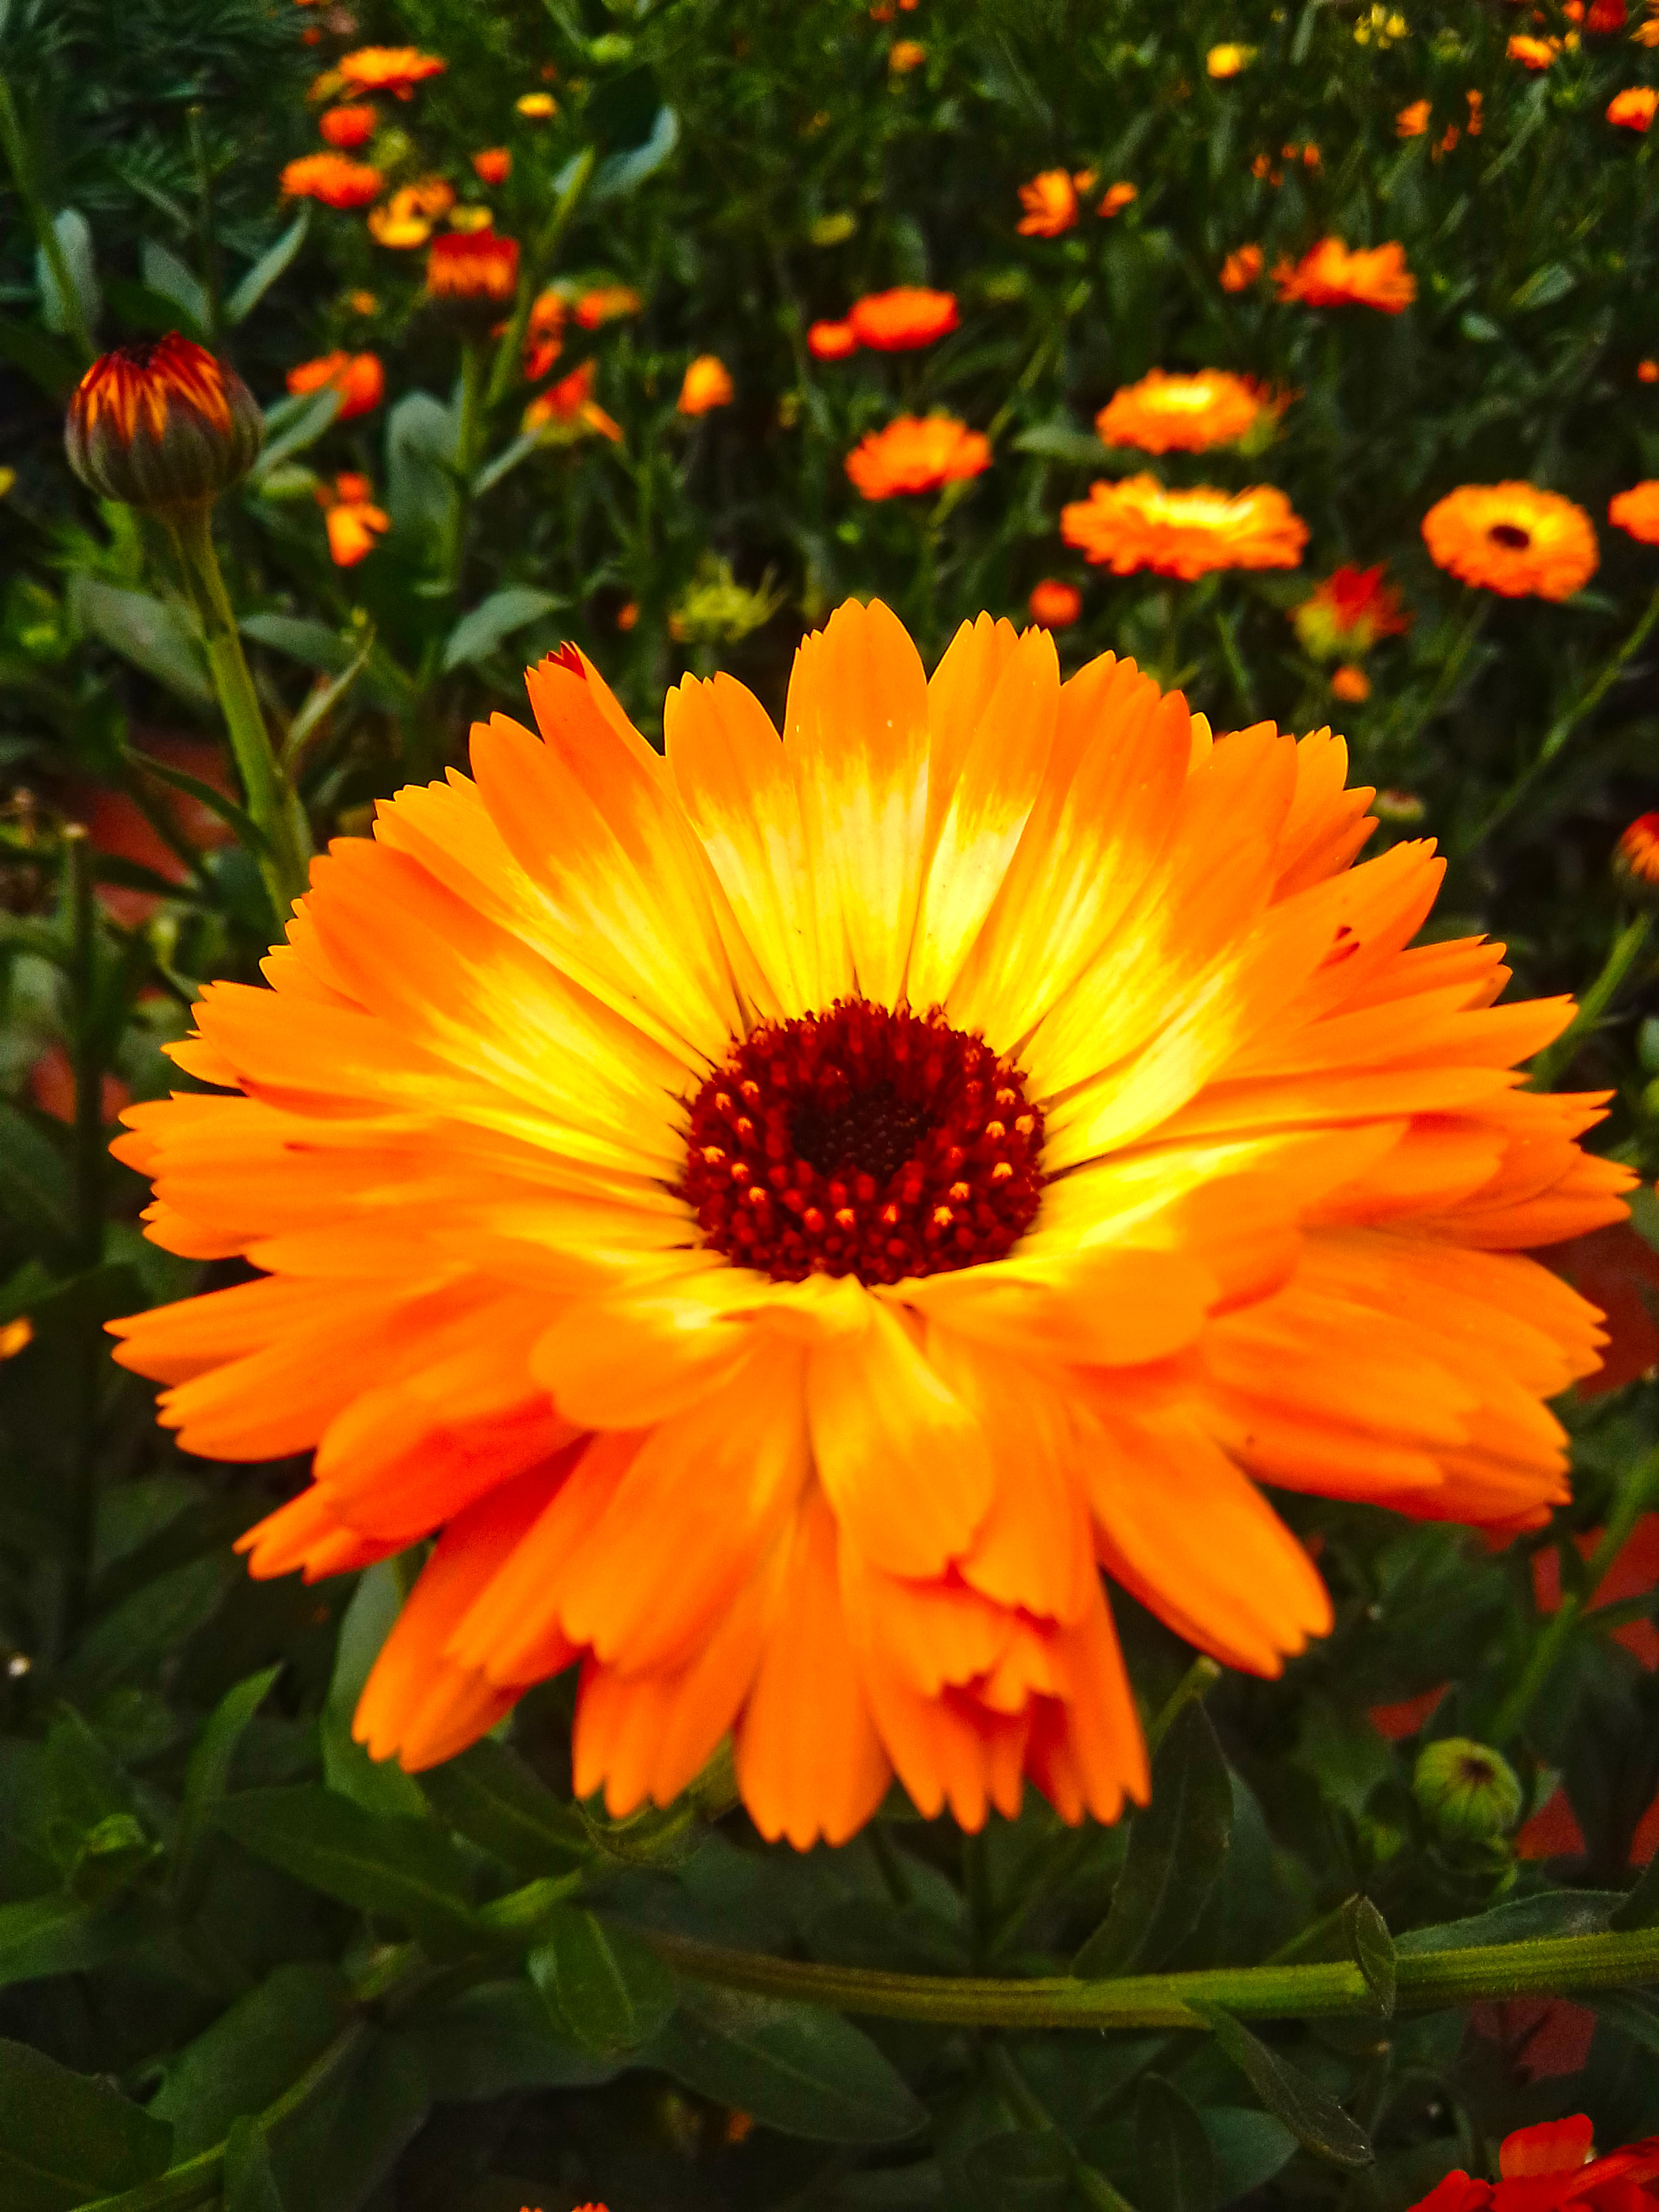 You can see here Pot Marigold Photography